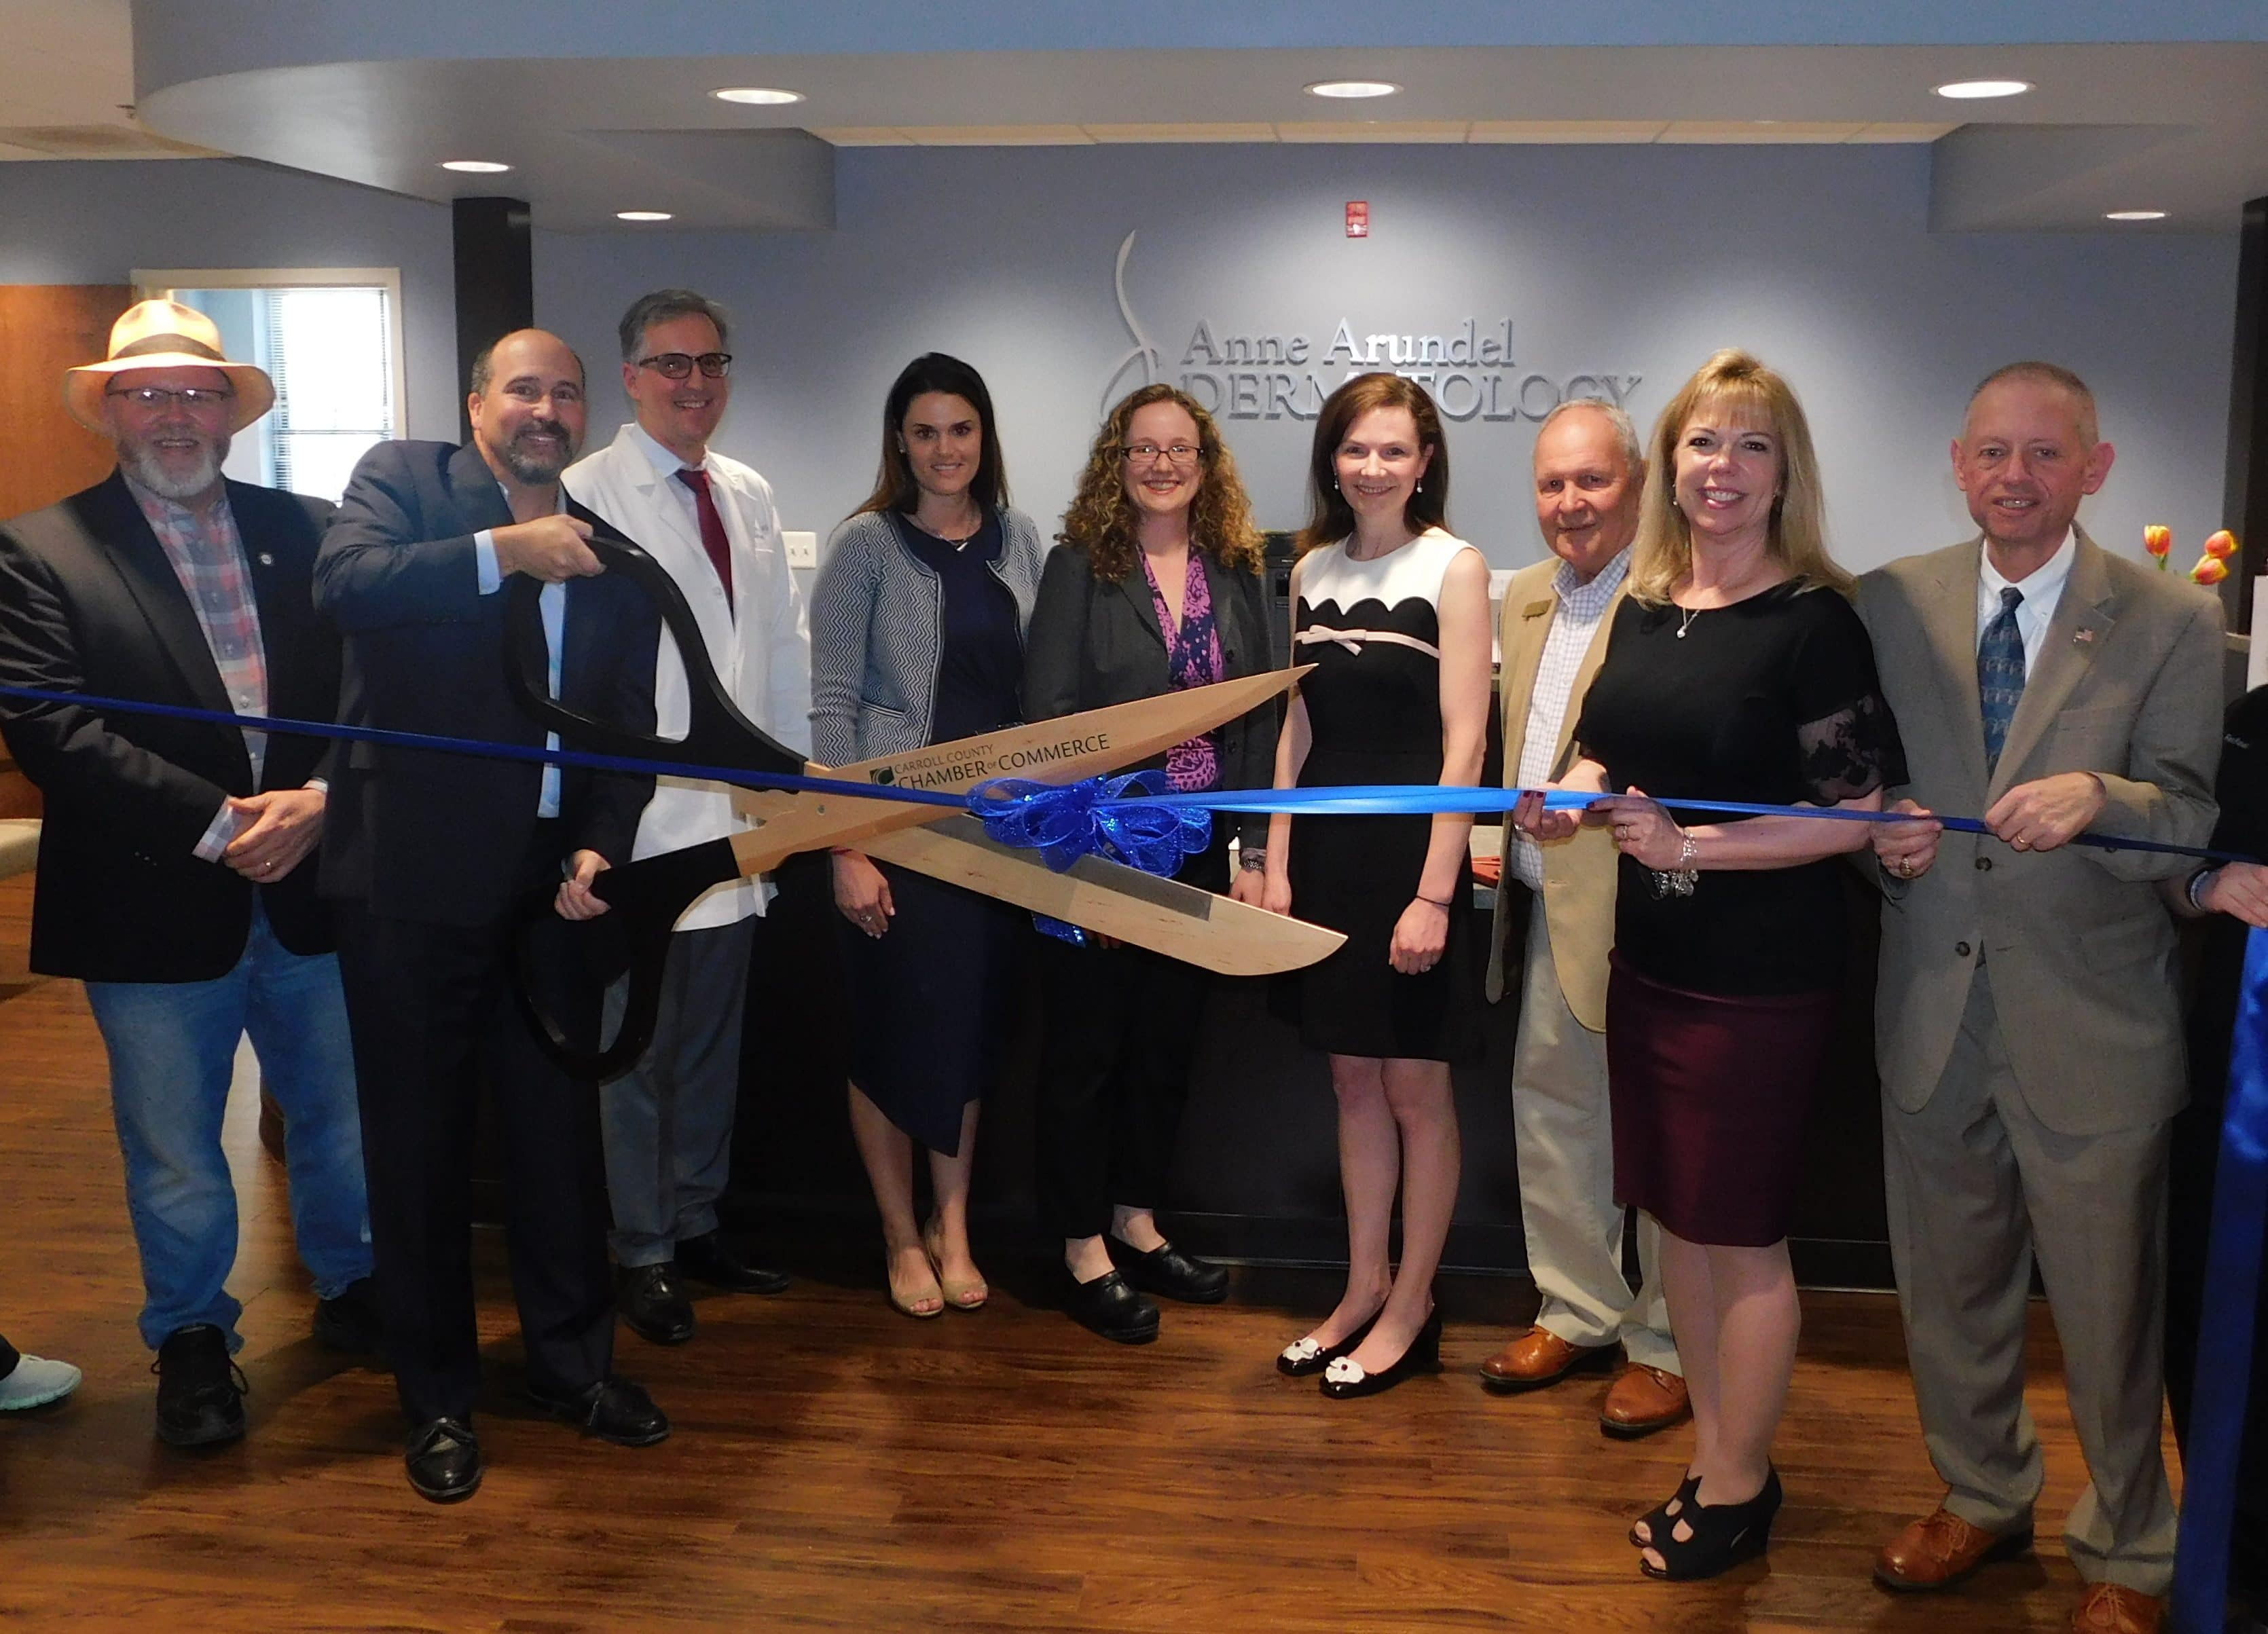 New Westminster Anne Arundel Dermatology Office Ribbon Cutting Ceremony